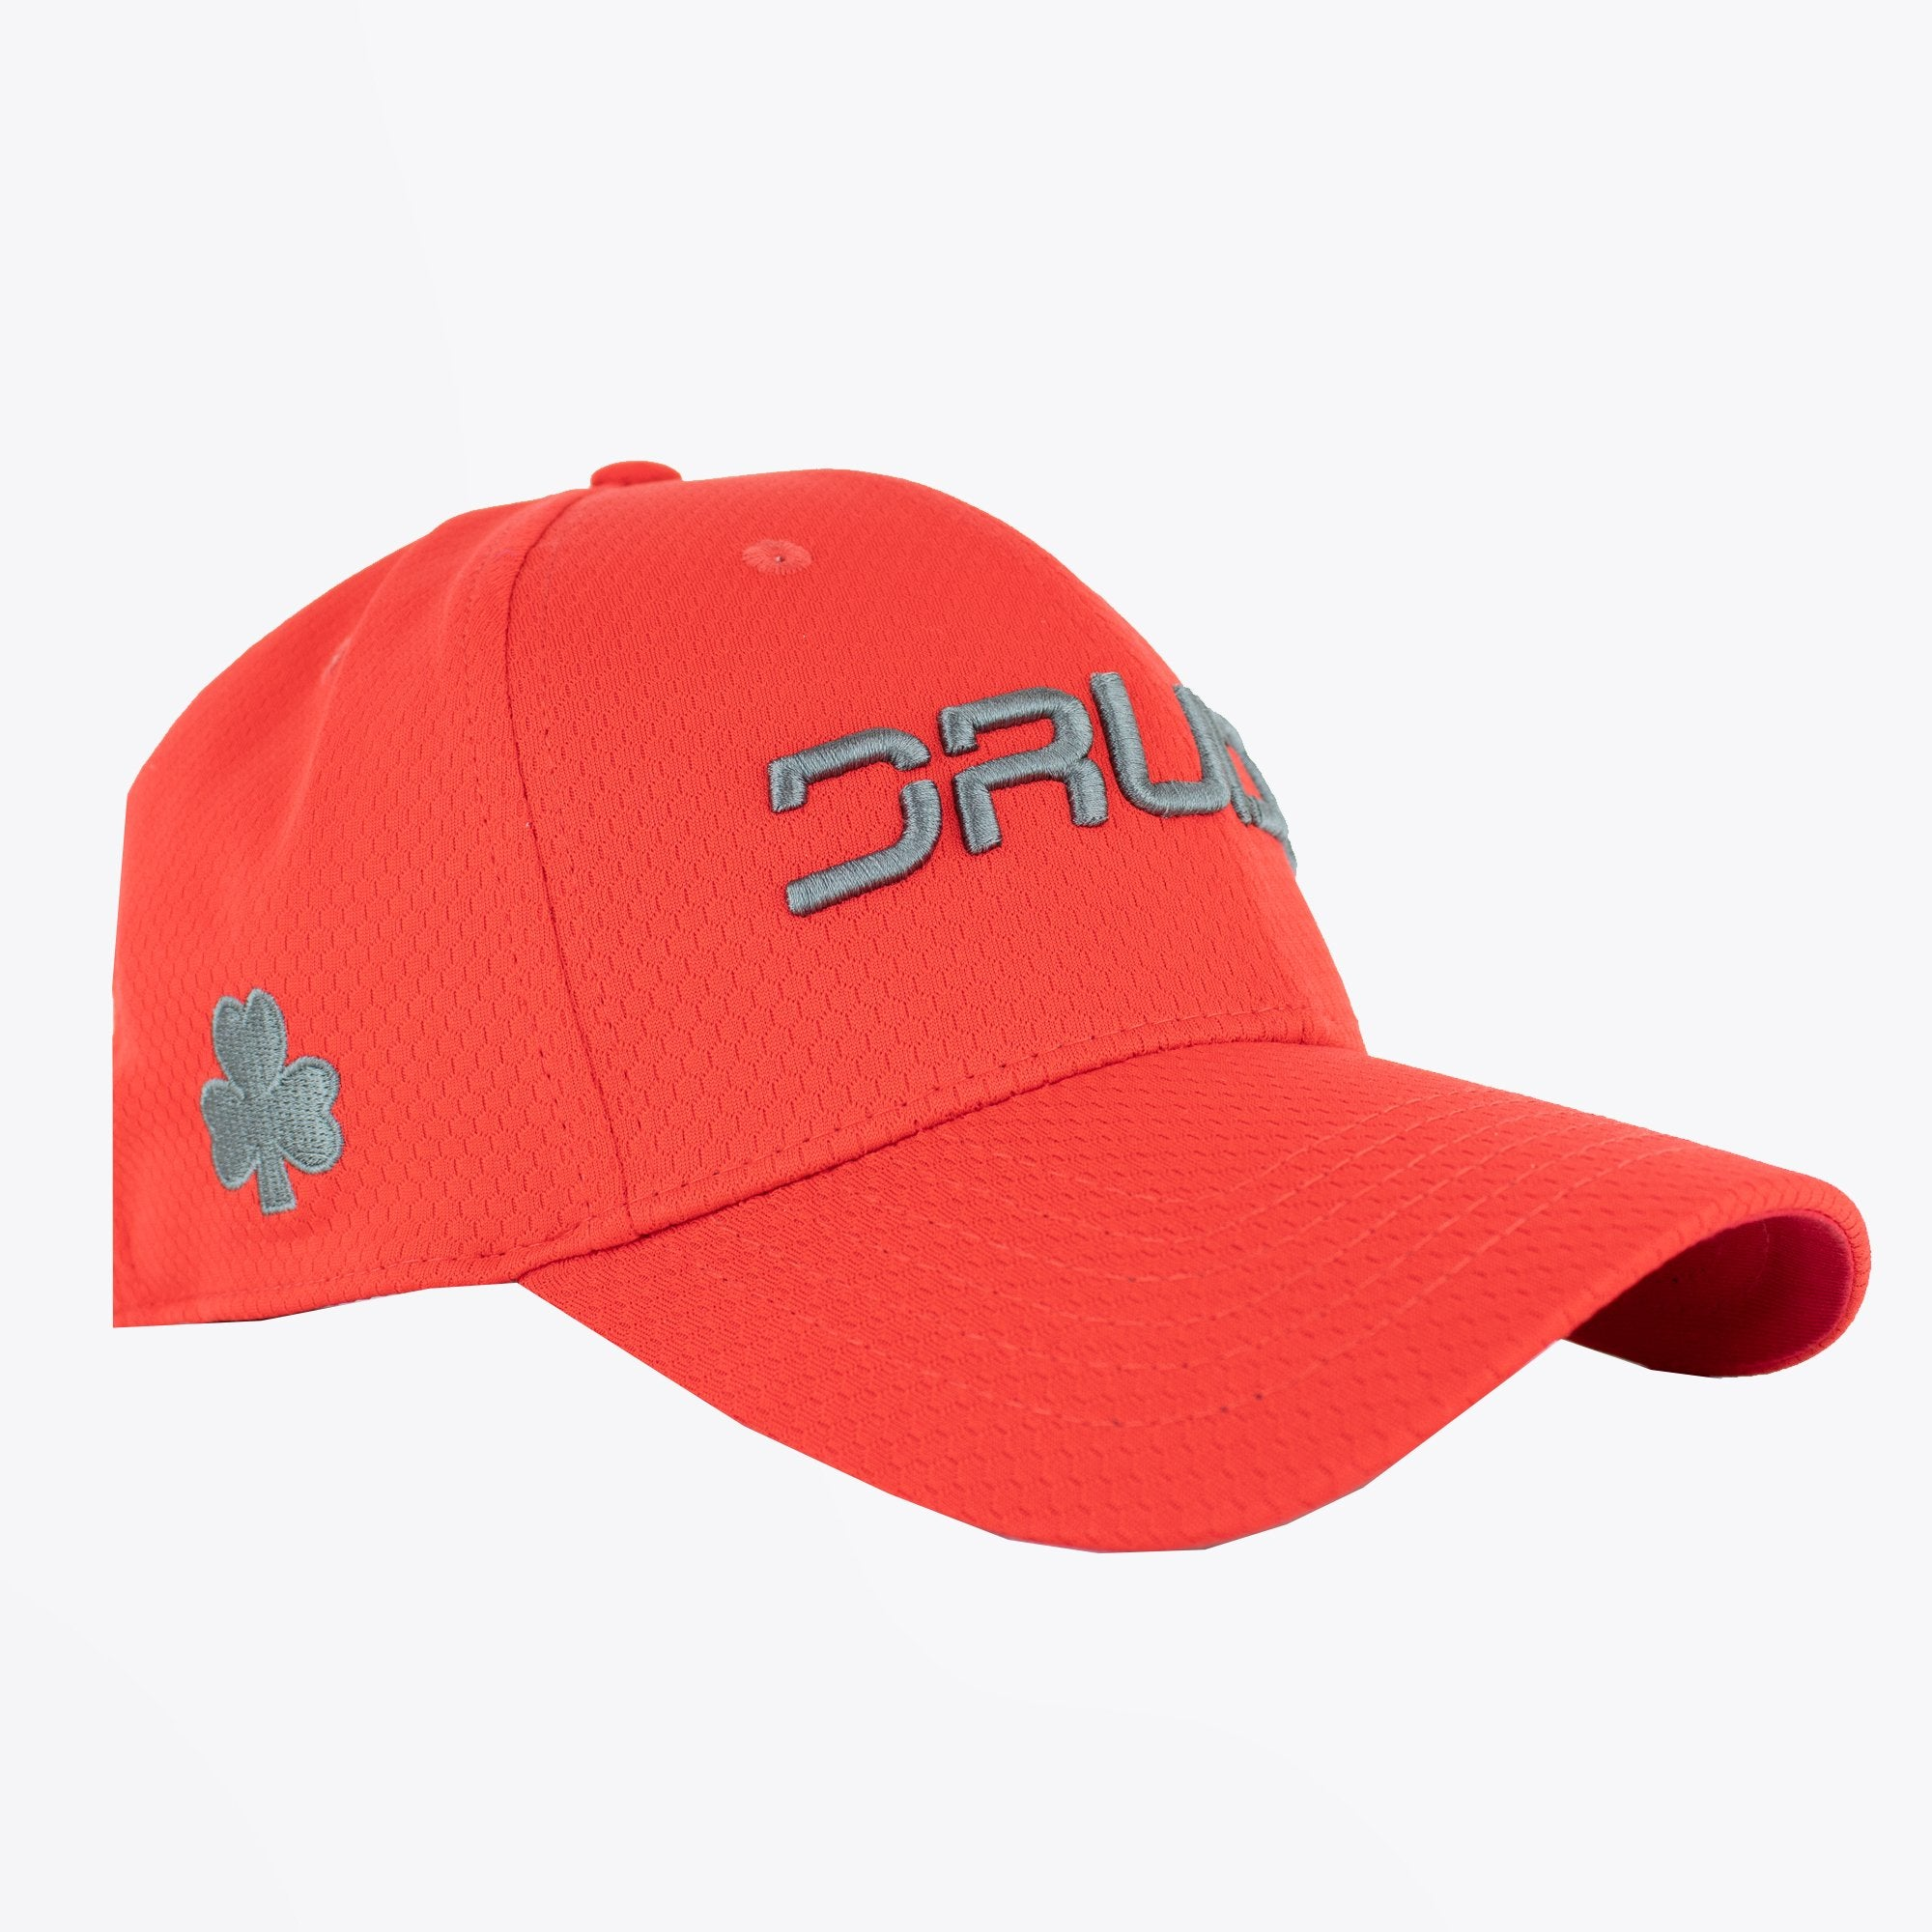 Druids Golf - Tour Cap Red (Druids)